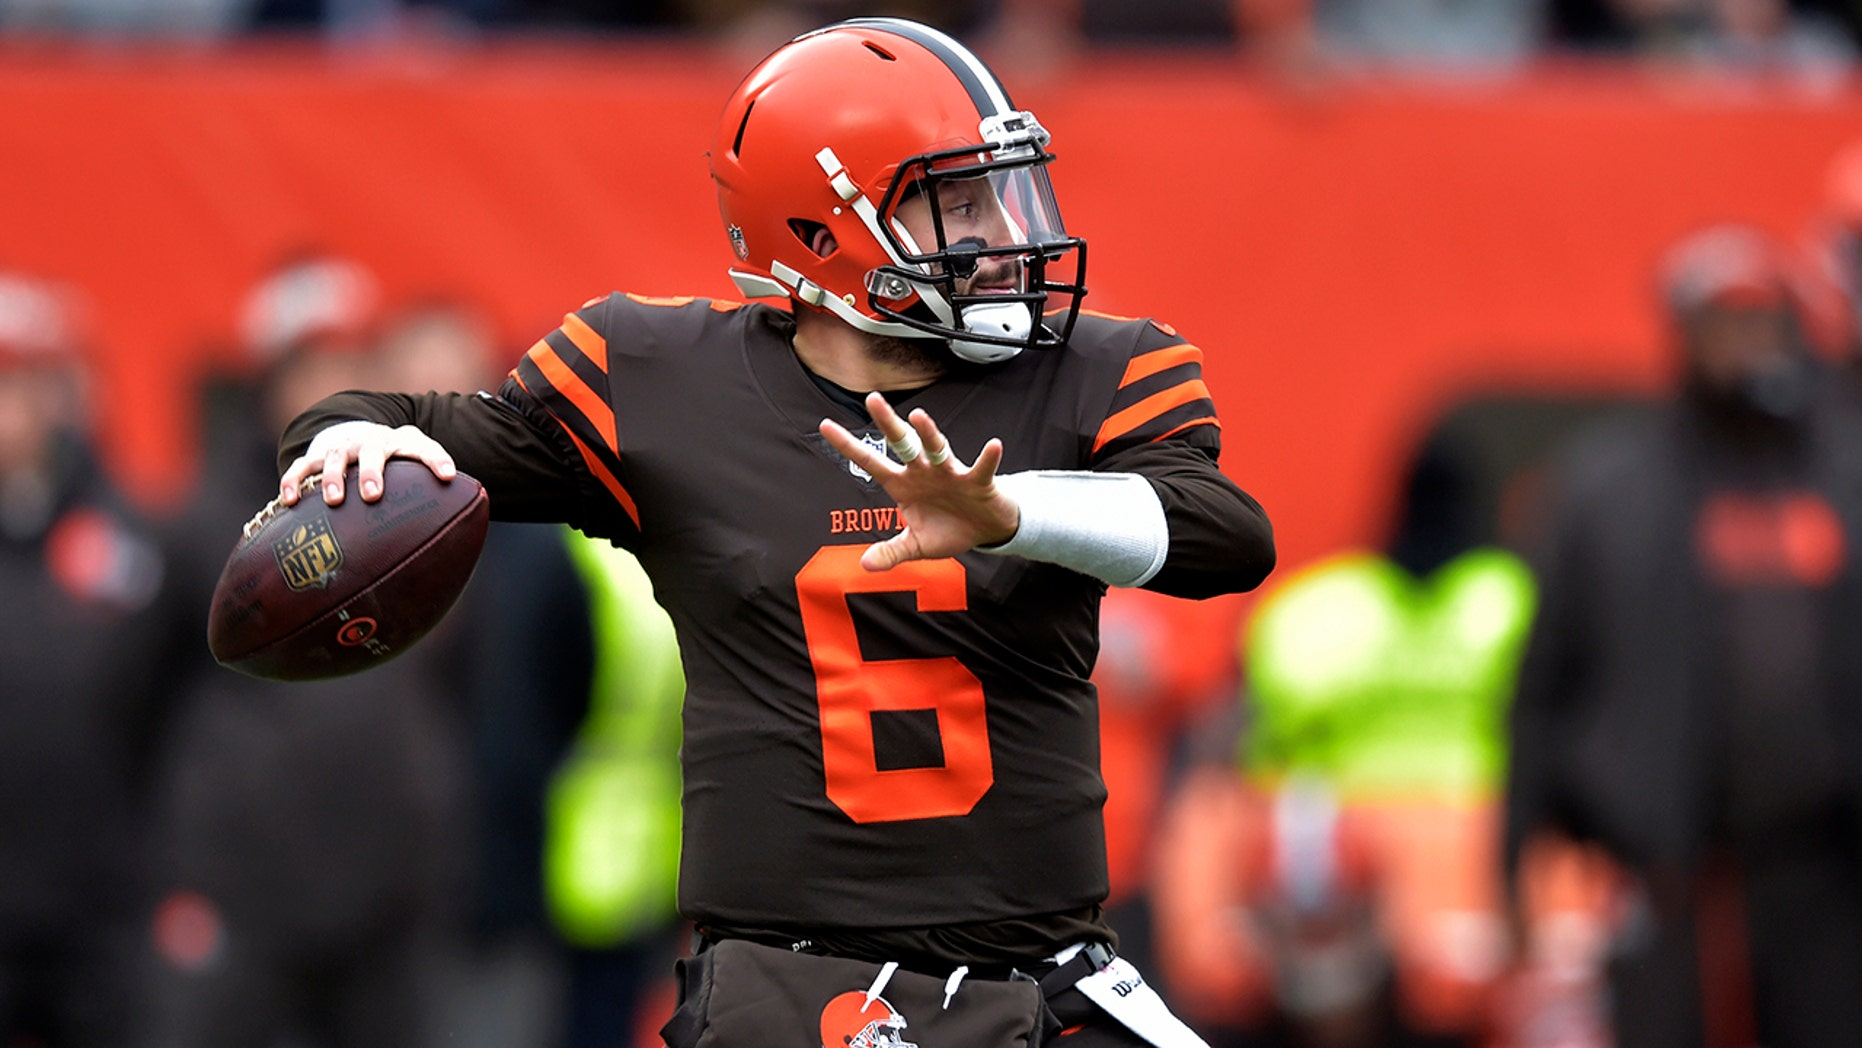 Mayfield dismisses staring down Hue Jackson